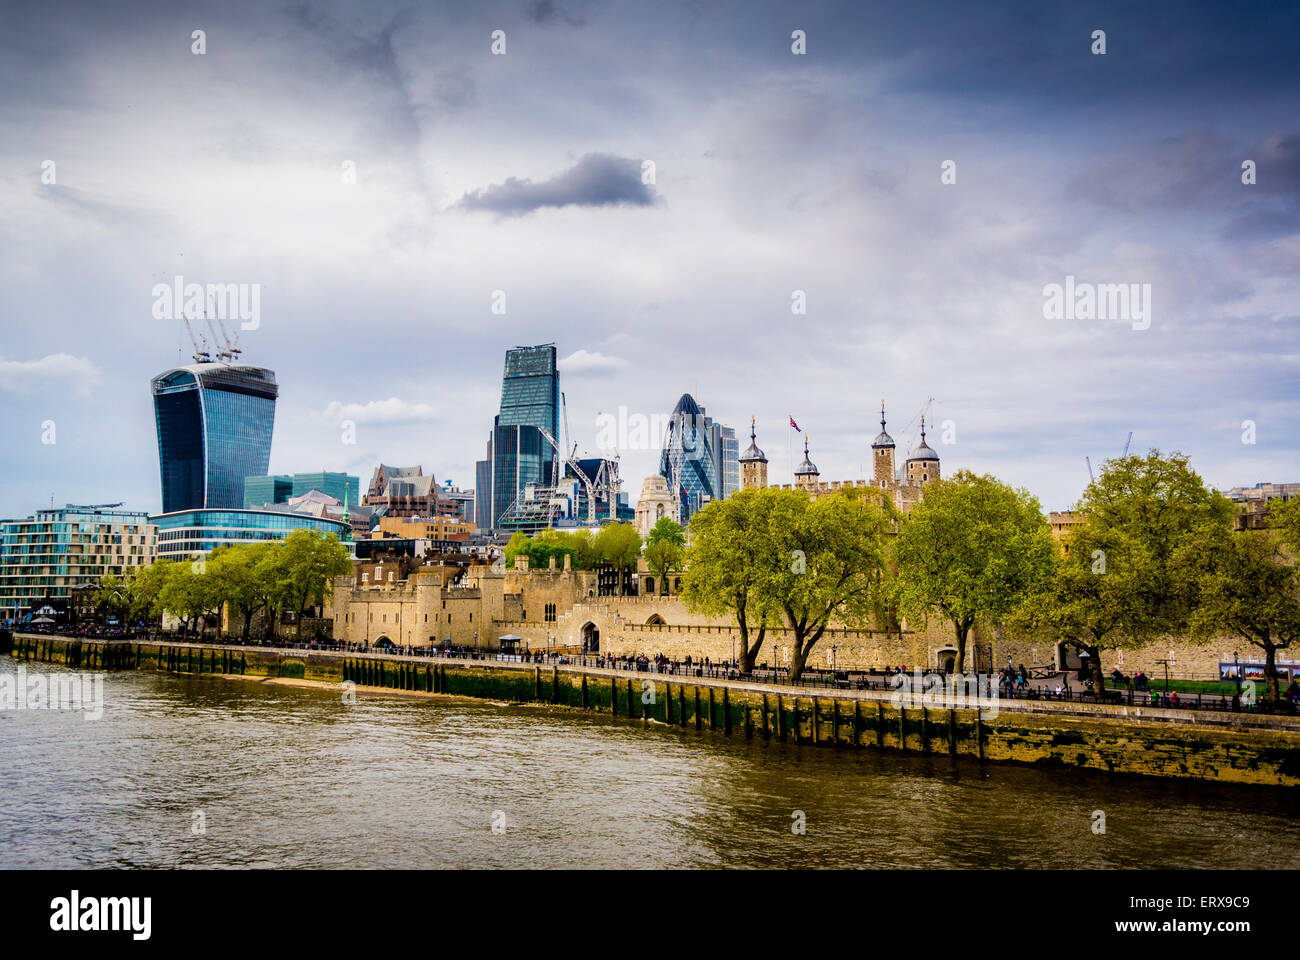 The Tower of London with the Gherkin and The Walkie Talkie in the background. - Stock Image